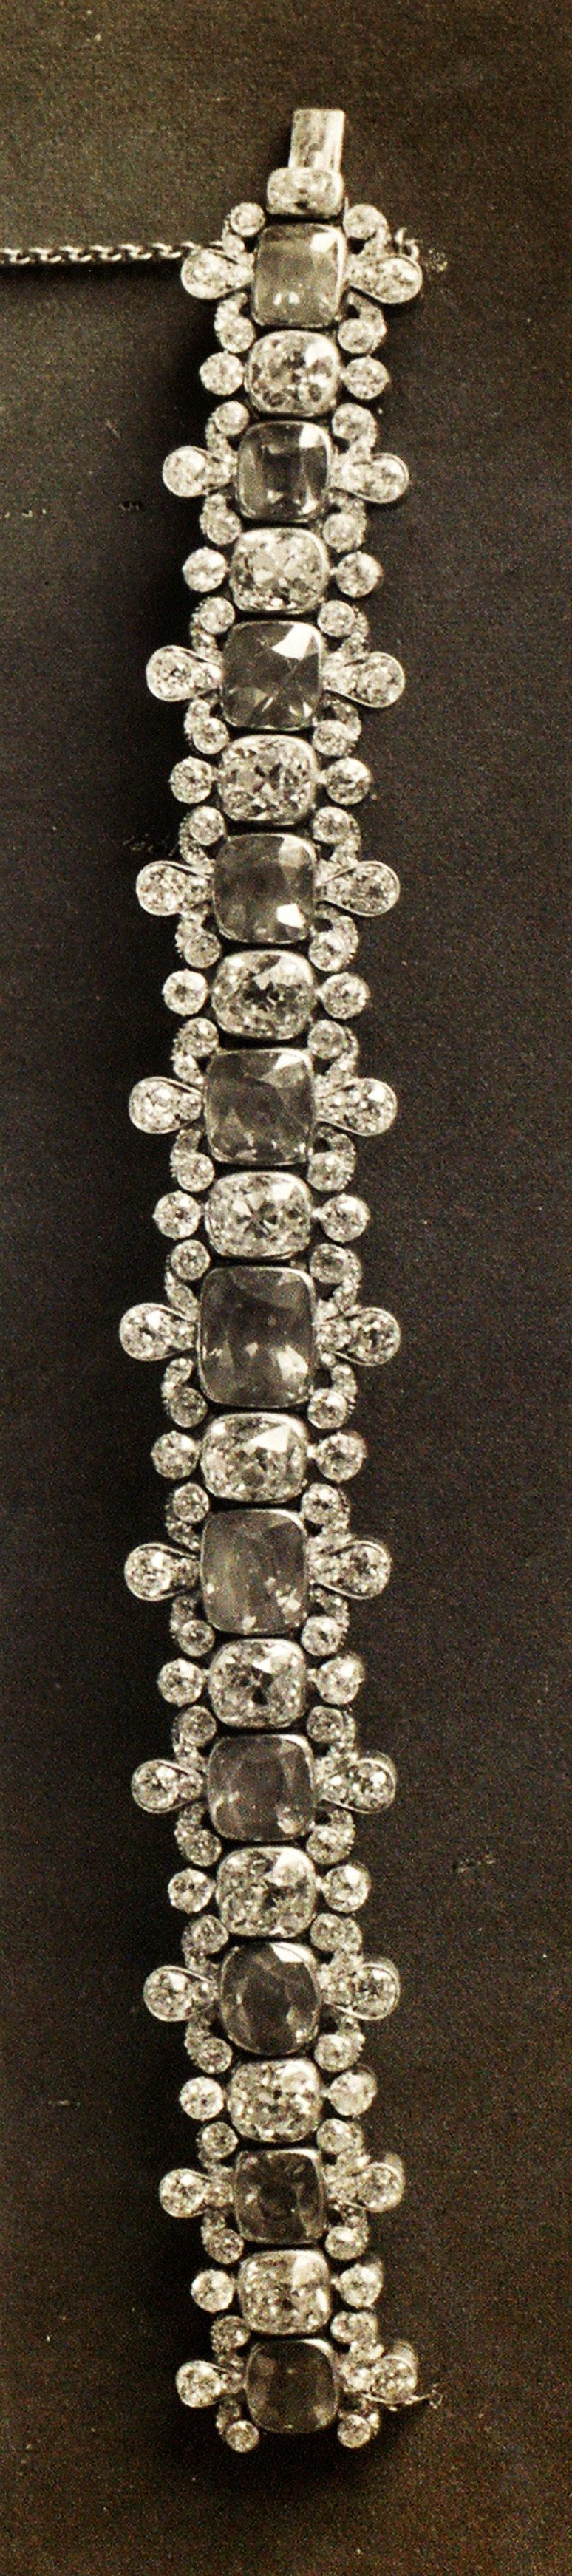 """Previously undiscovered photo of undocumented Russian Crown Jewels were recently discovered in the USGS library. The photo appear in a 1922 album called """"Russian Diamond Fund,"""" that was uncovered in the rare book room of the library. This bracelet was one of the four undocumented jewels."""